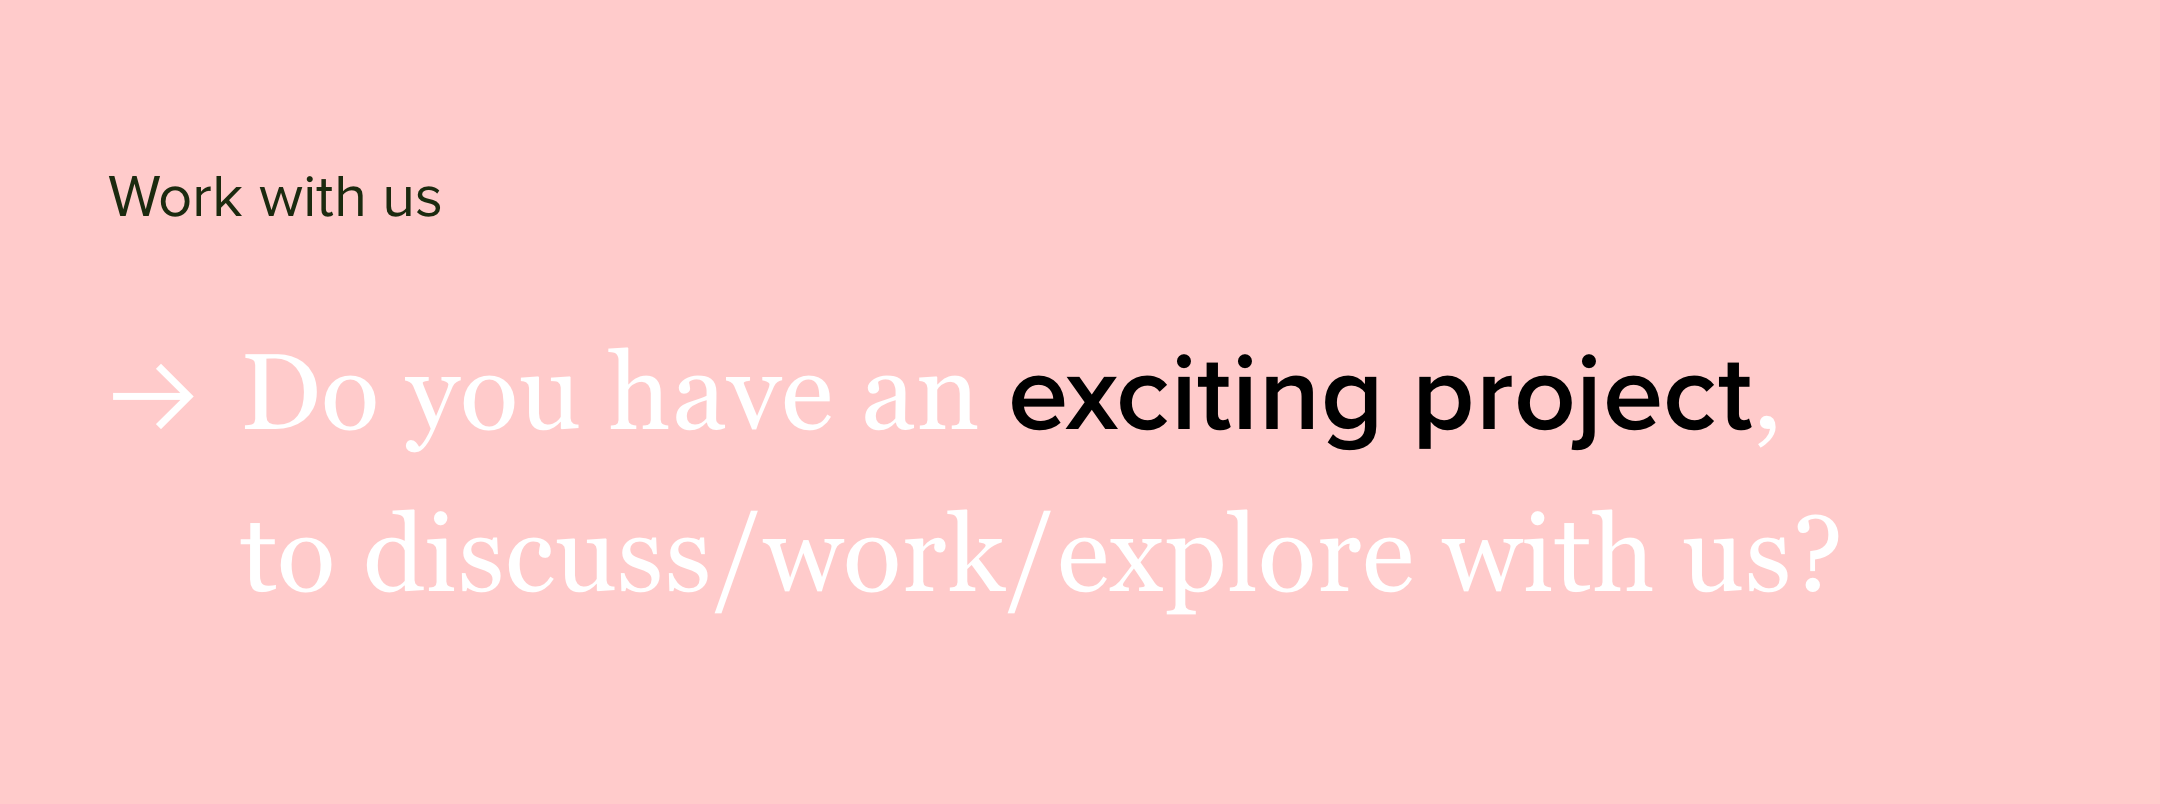 work with us.png